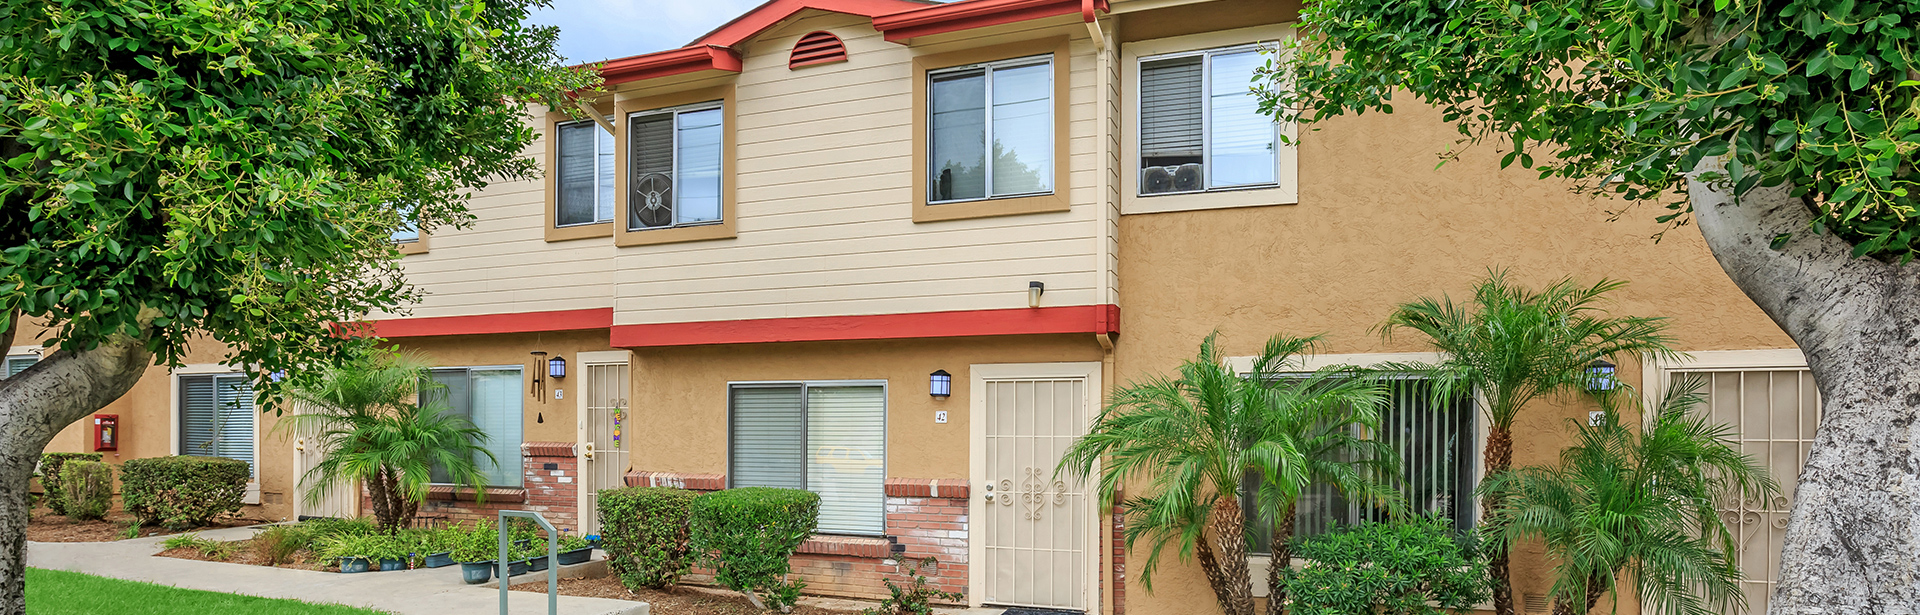 shannon wood townhomes apartment homes in el cajon ca